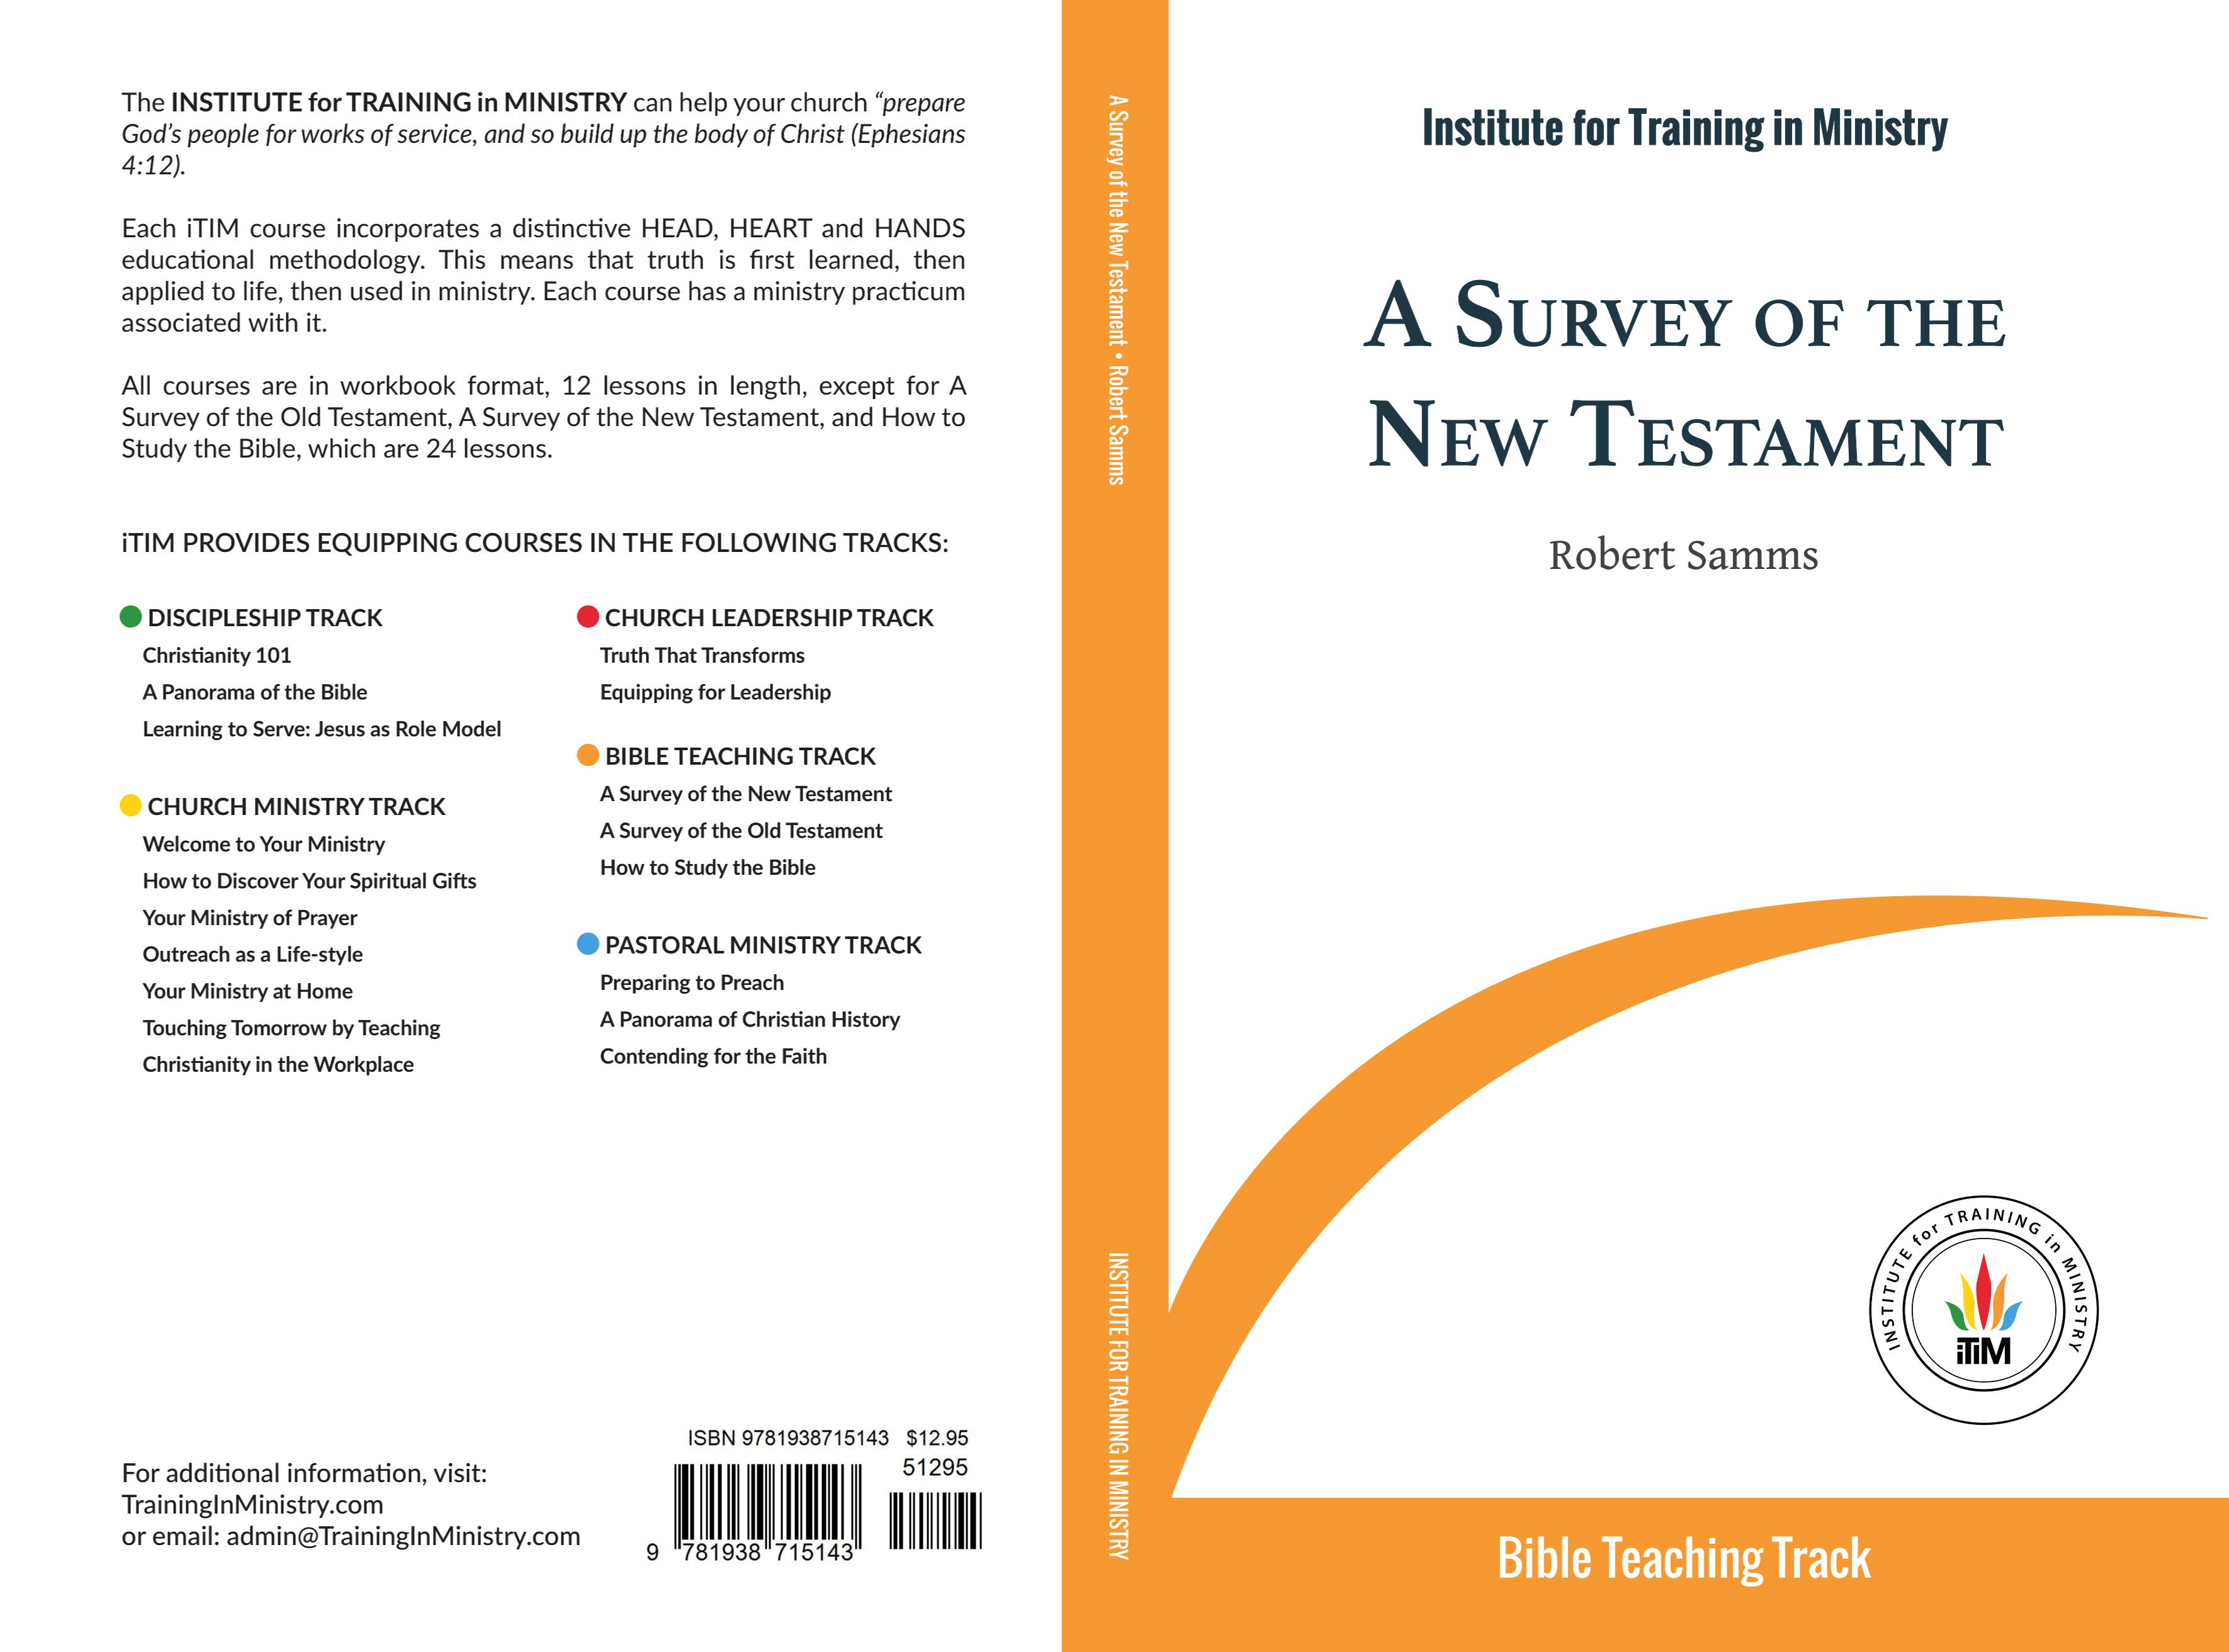 A Survey of the New Testament cover image